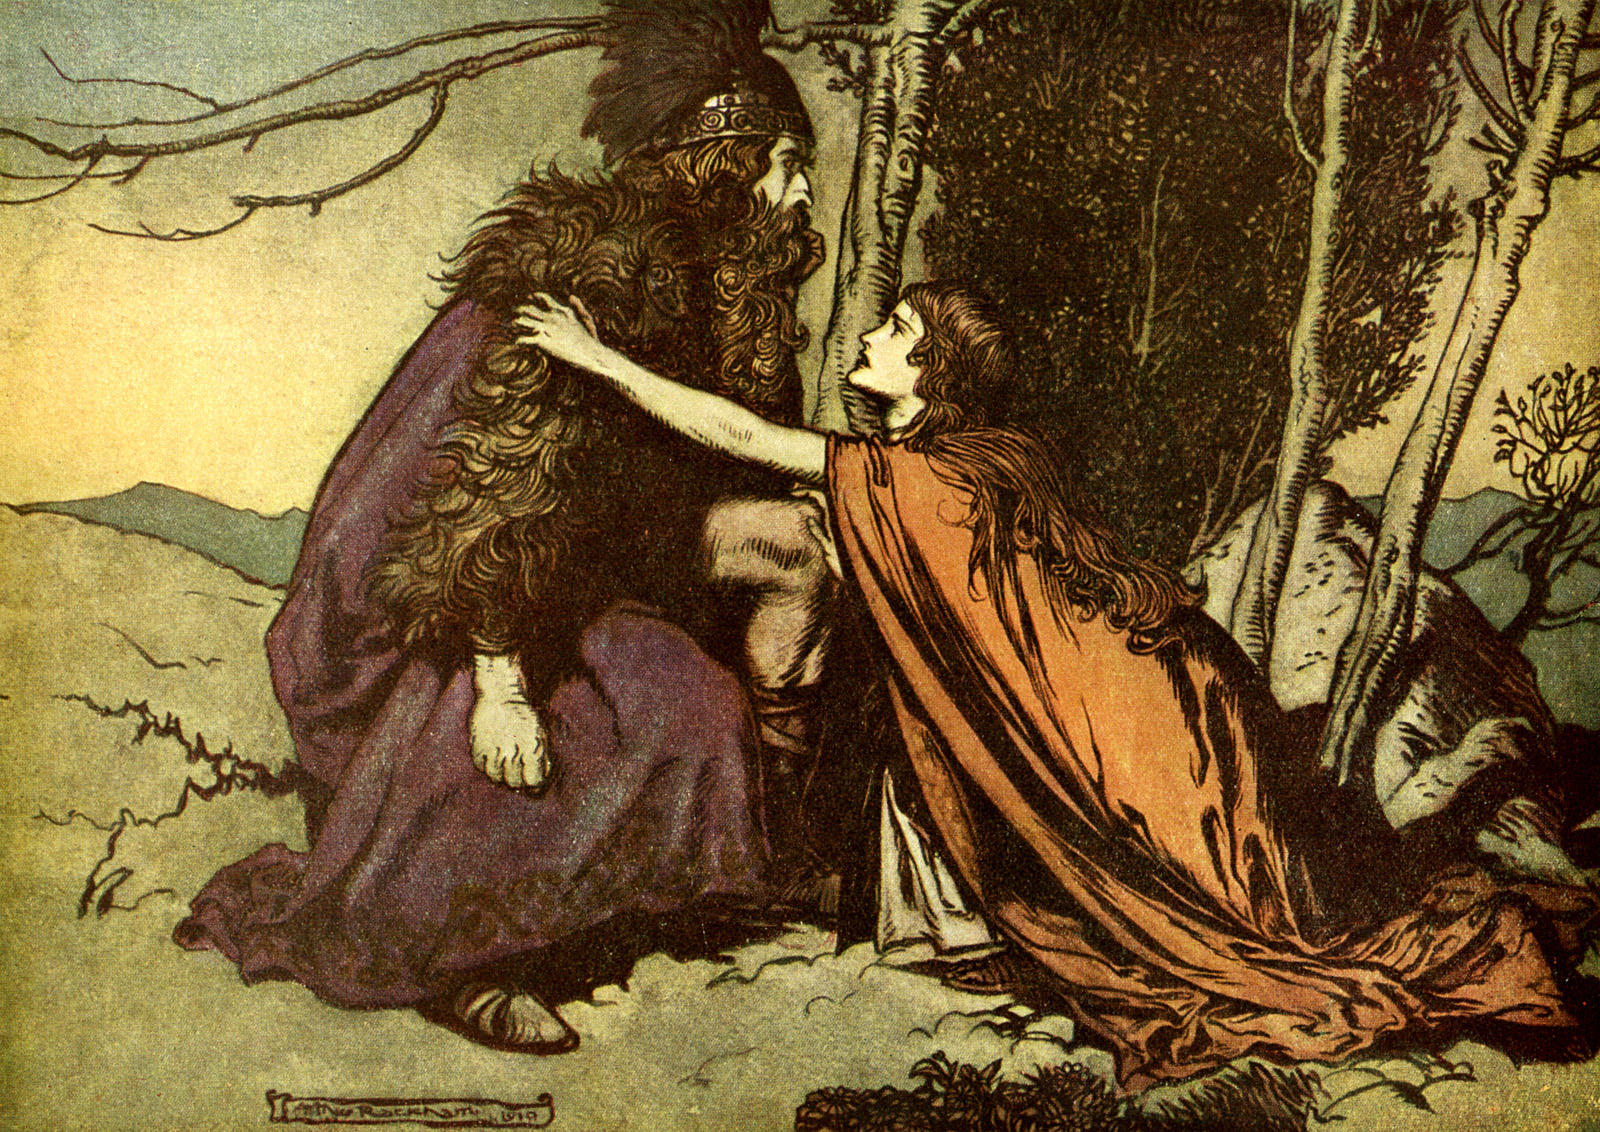 arthur-rackham_the-ring-of-the-niblung_the-valkyrie_06